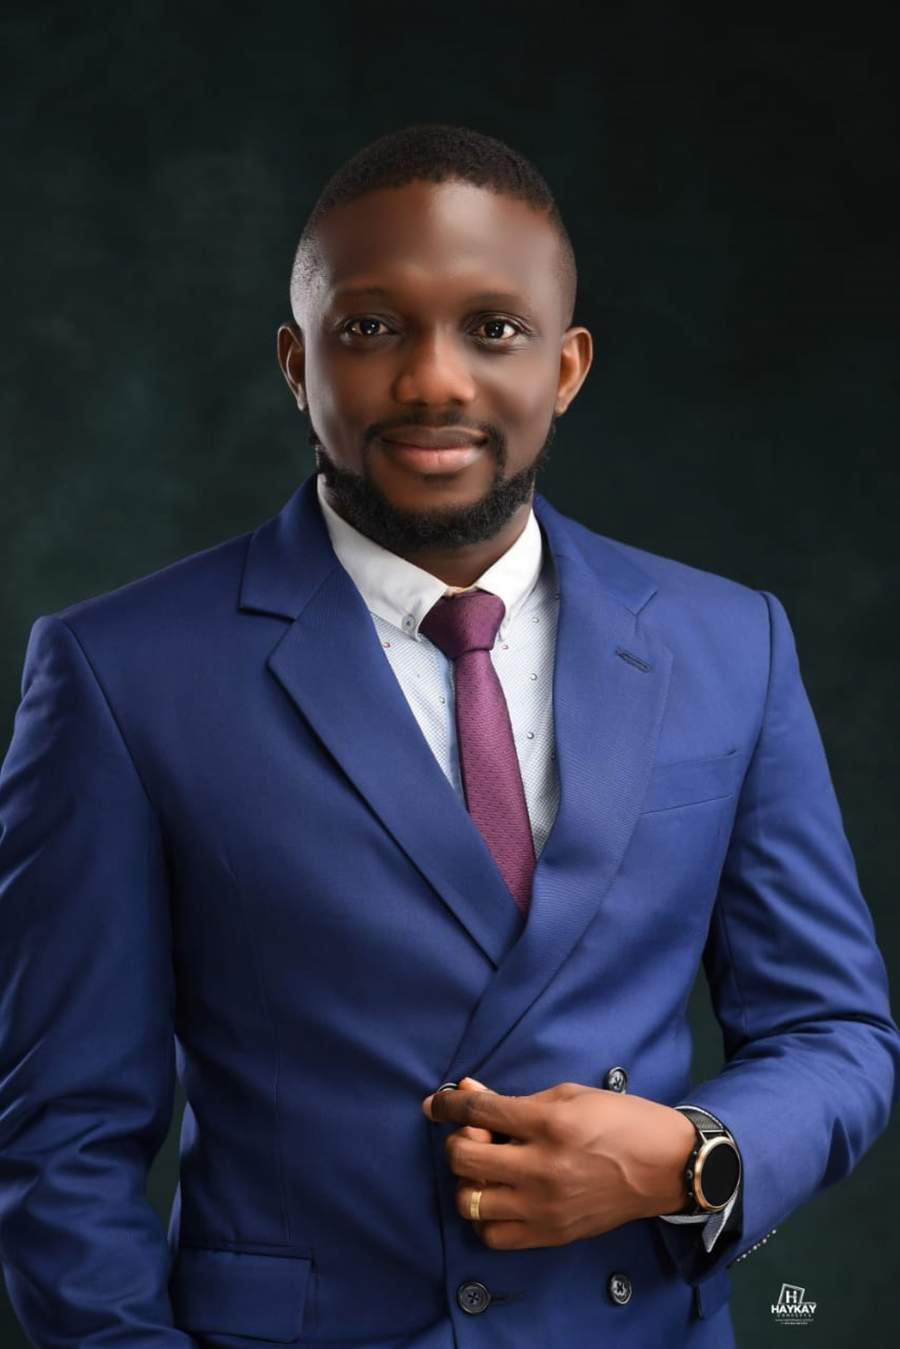 Tope Ijibadejo, Nigeria Region Manager for CMTrading